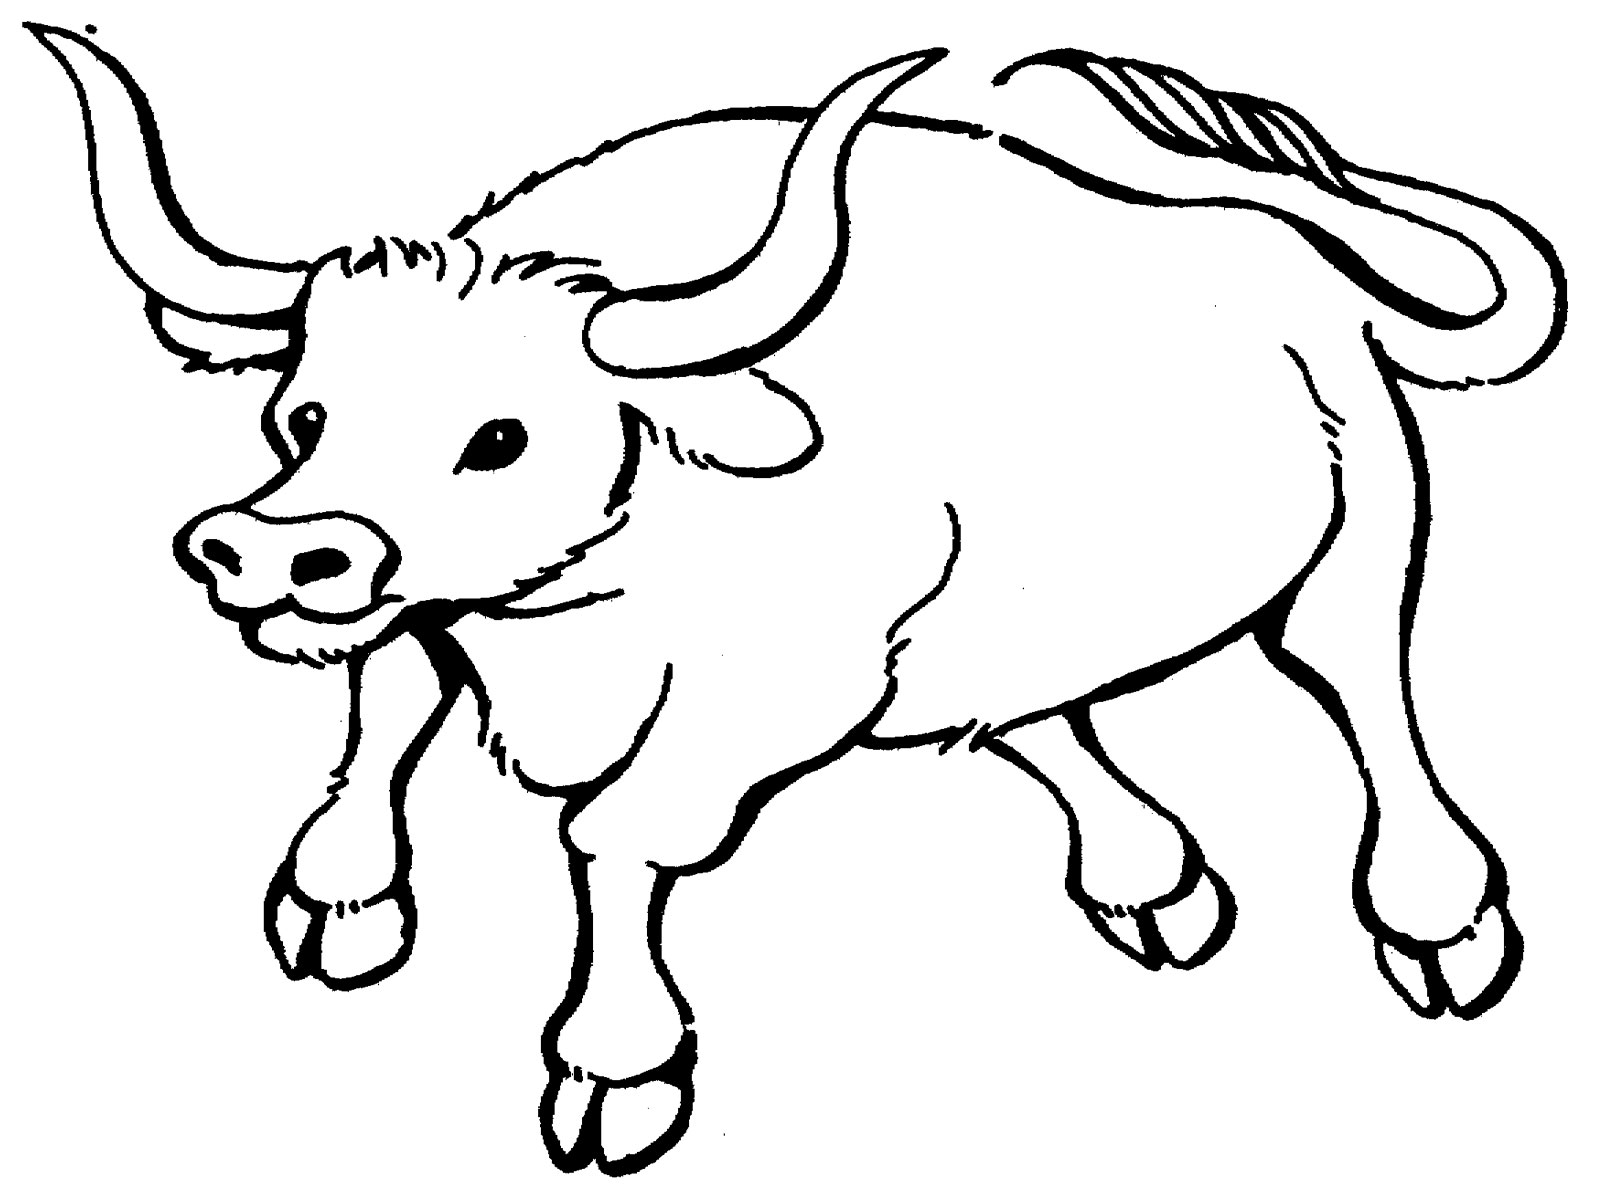 Adult Beauty Bull Coloring Page Gallery Images beauty bull coloring pages to download and print for free images